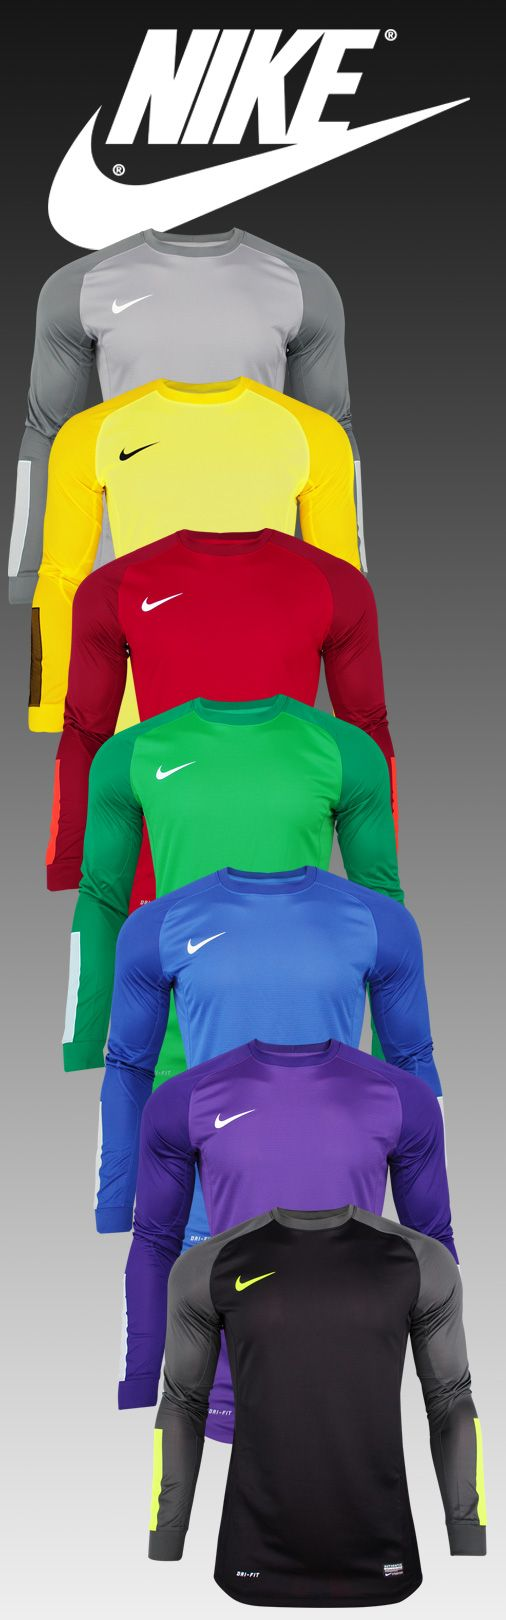 nike sportswear blazer - Goalkeeper Set Nike Squad Flash | Goalkeeper Shirts | Pinterest ...